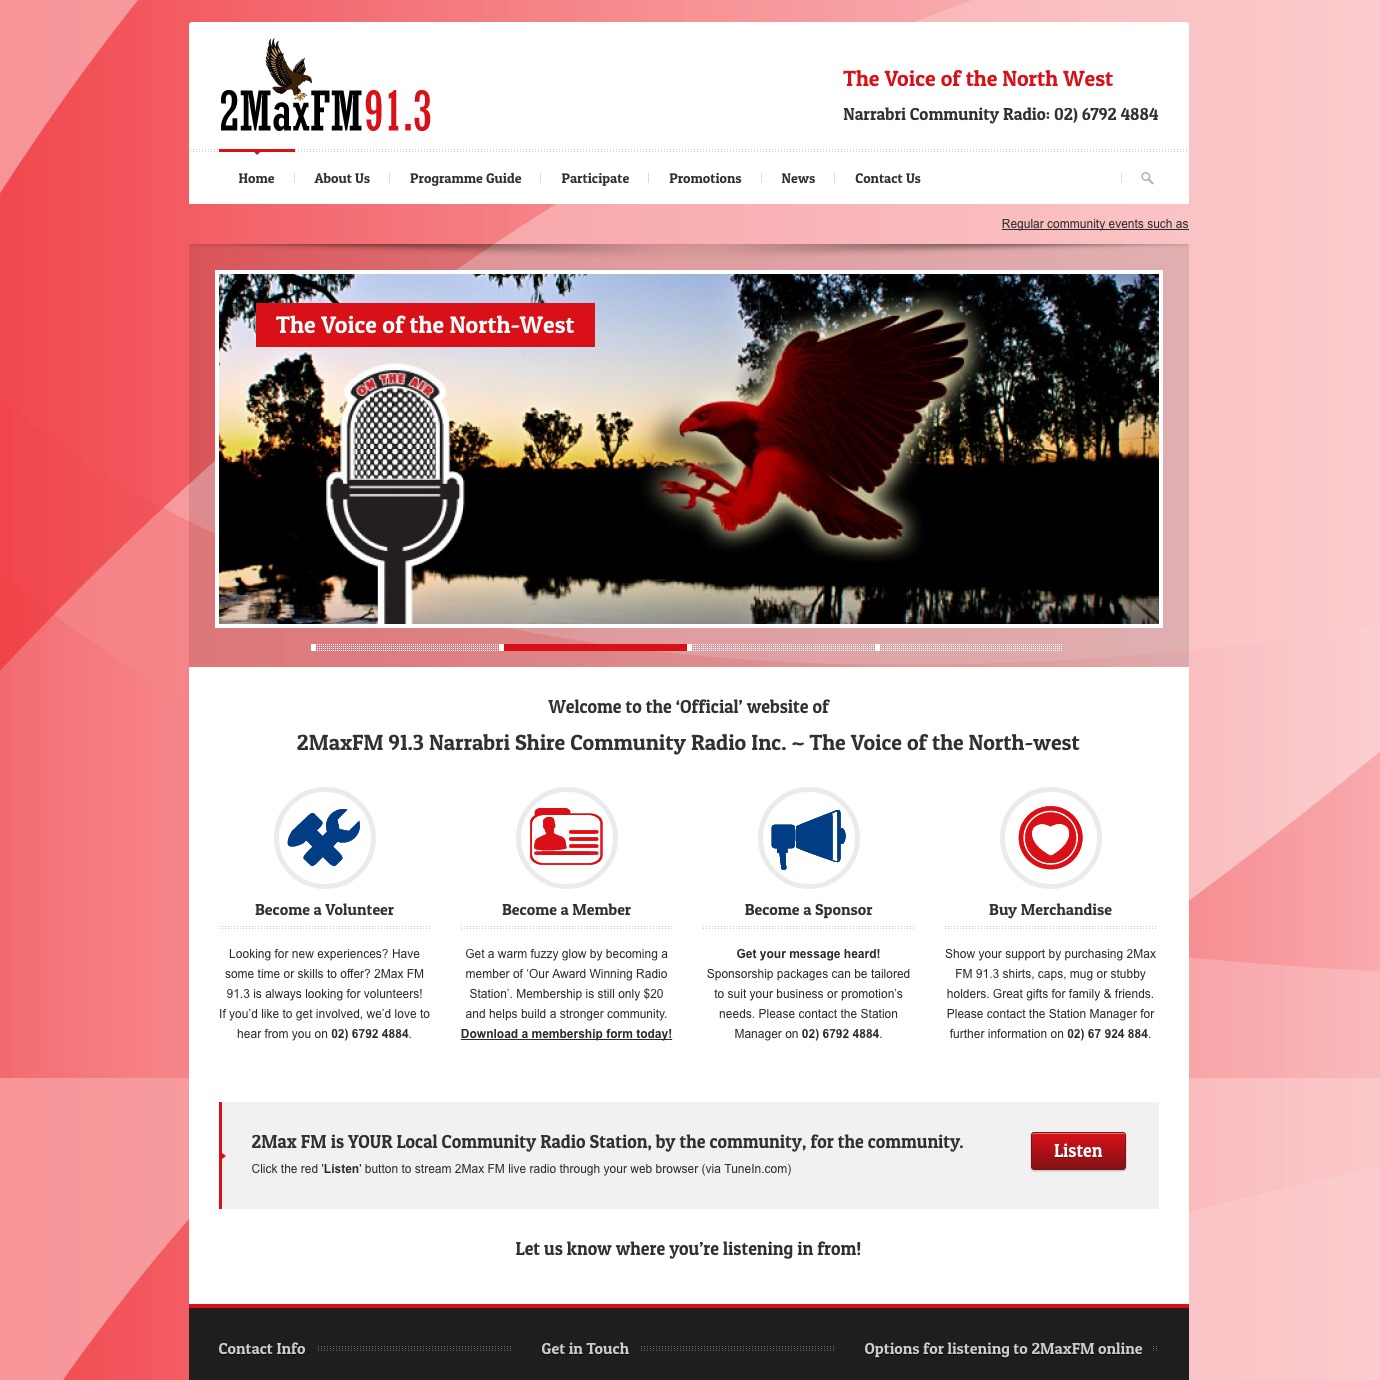 2Max FM 91.3 Narrabri Community Radio website